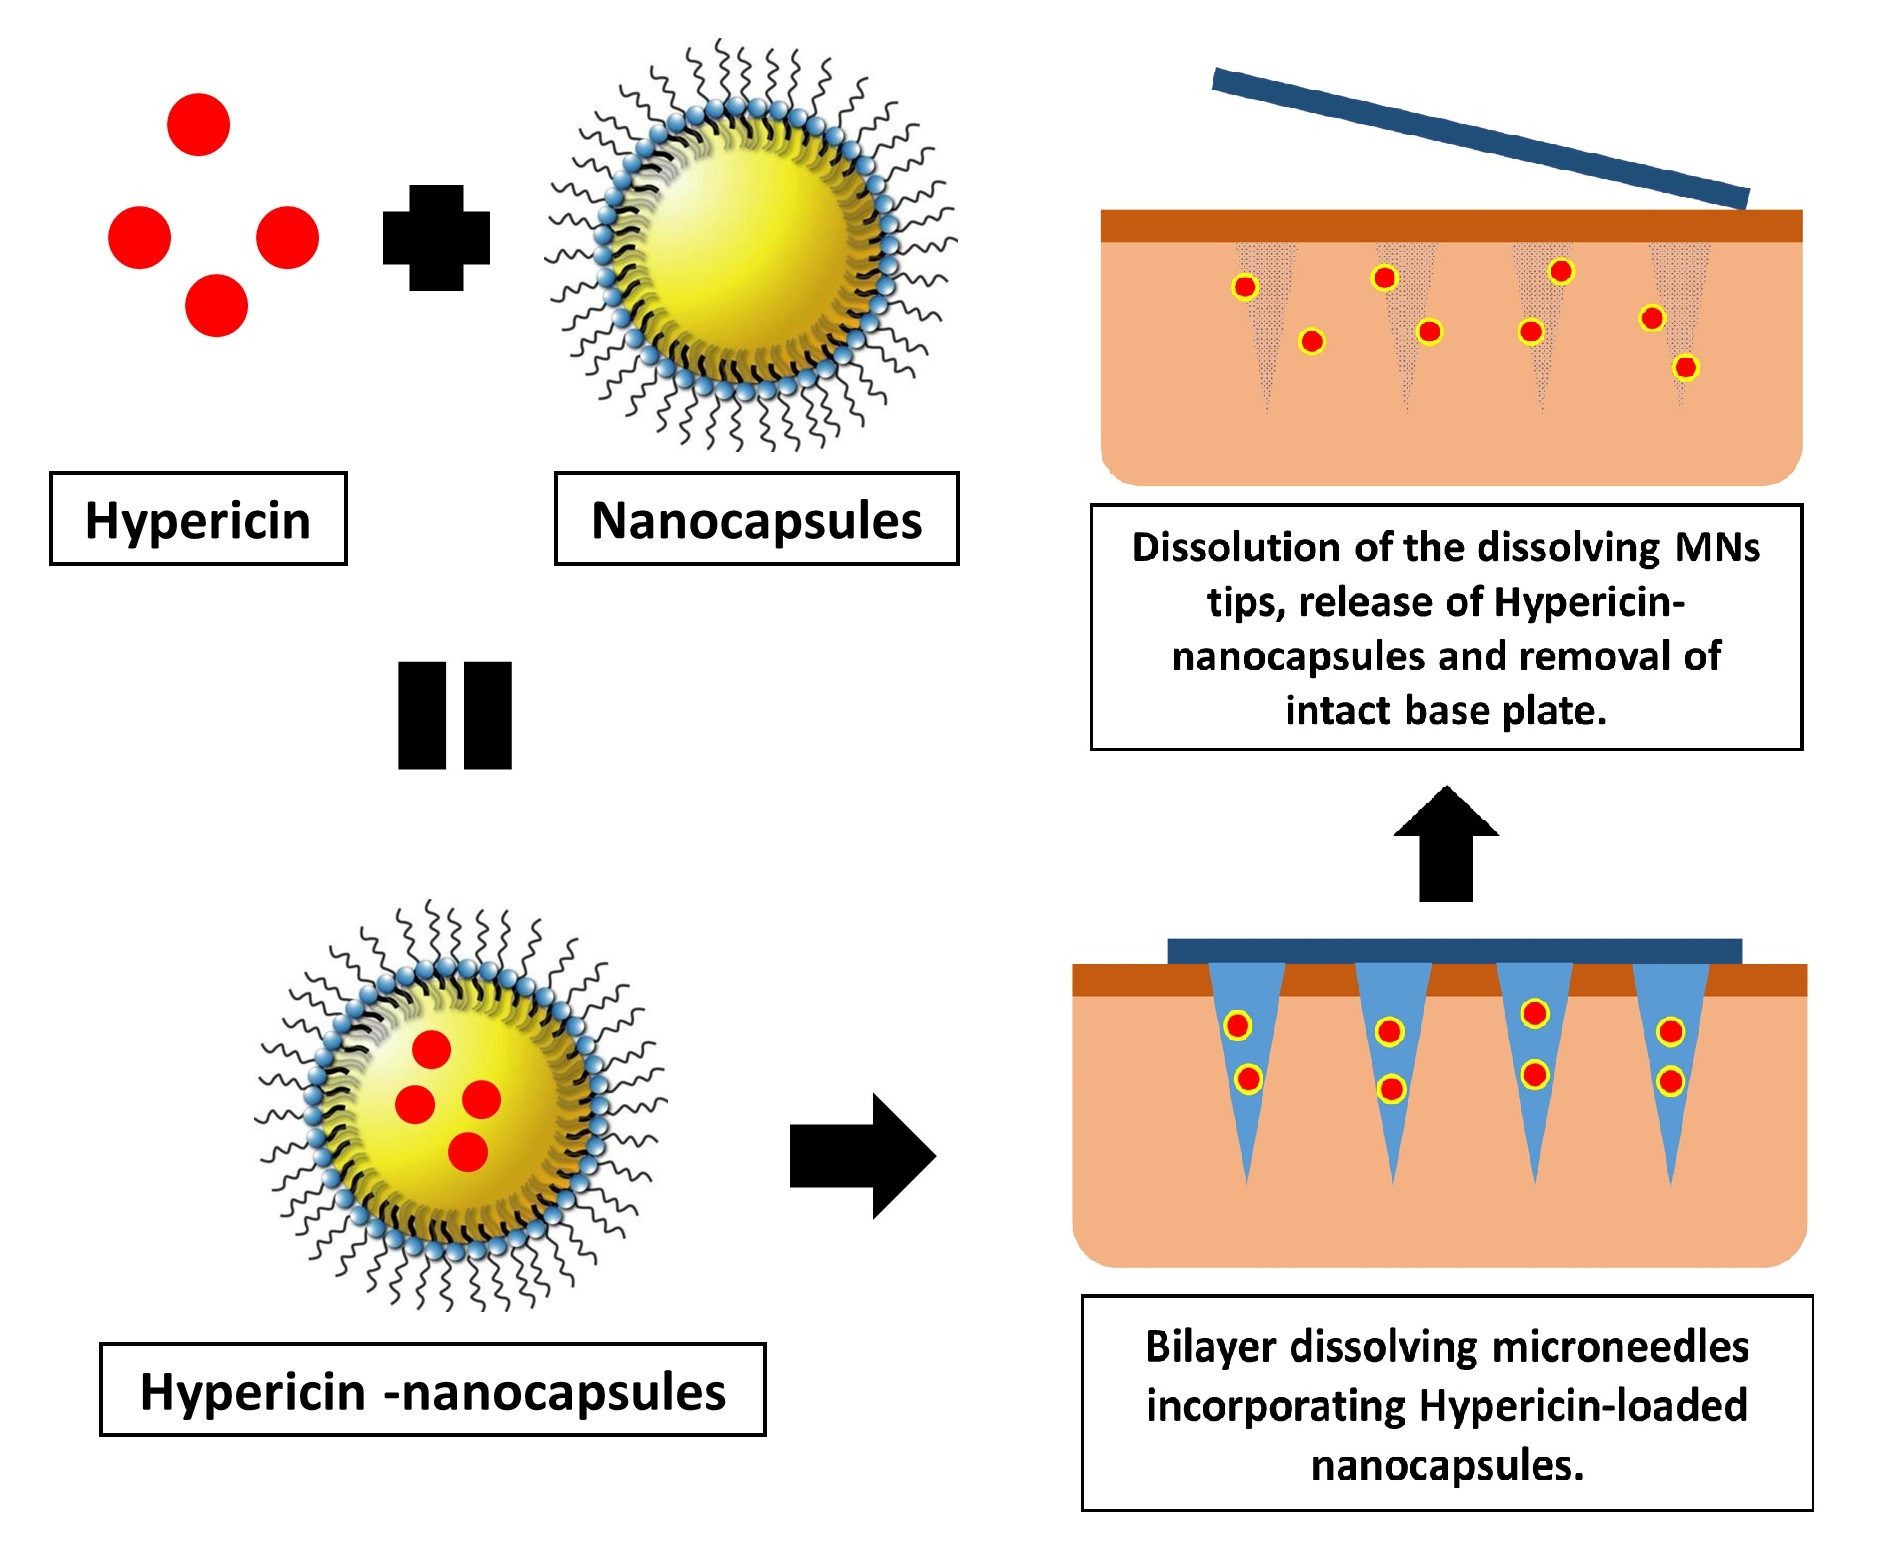 Bilayer Dissolving Microneedles Incorporating Hypericin-Loaded Nanocapsules For Improved Localised Photodynamic Therapy